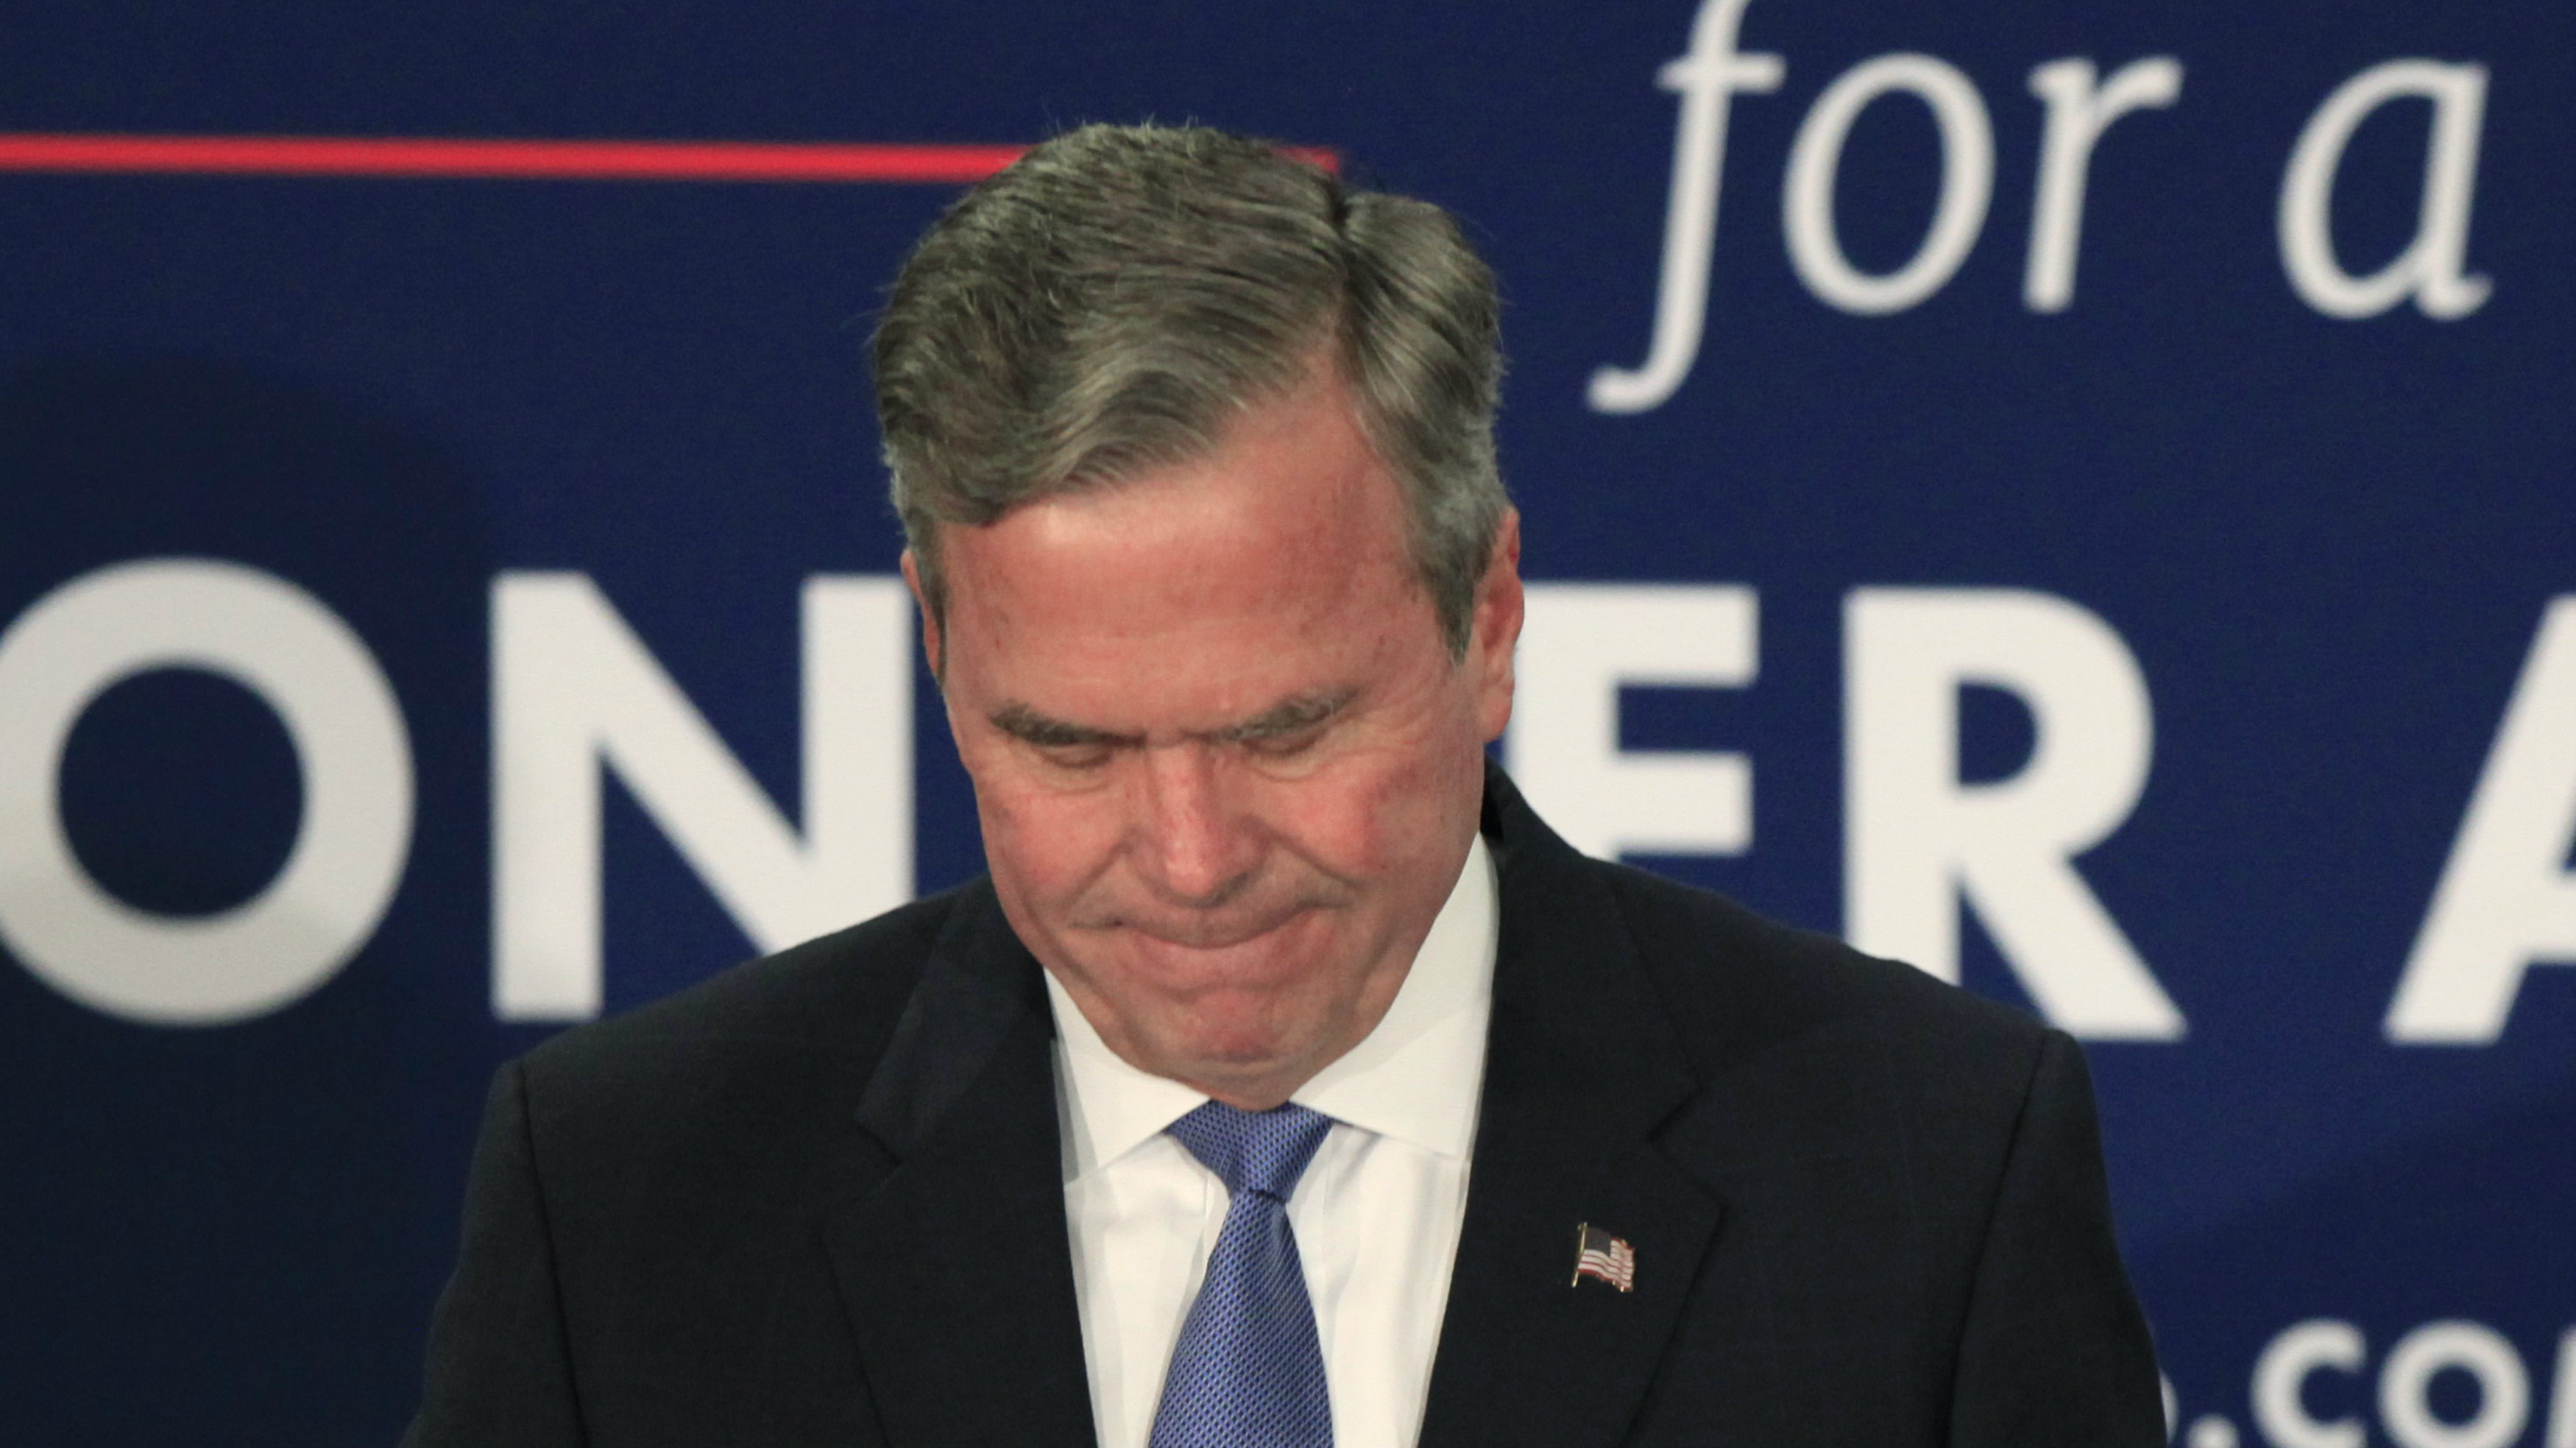 U.S. Republican presidential candidate Jeb Bush pauses as he announces that he is suspending his presidential campaign, at his South Carolina primary night party in Columbia, South Carolina, February 20, 2016.